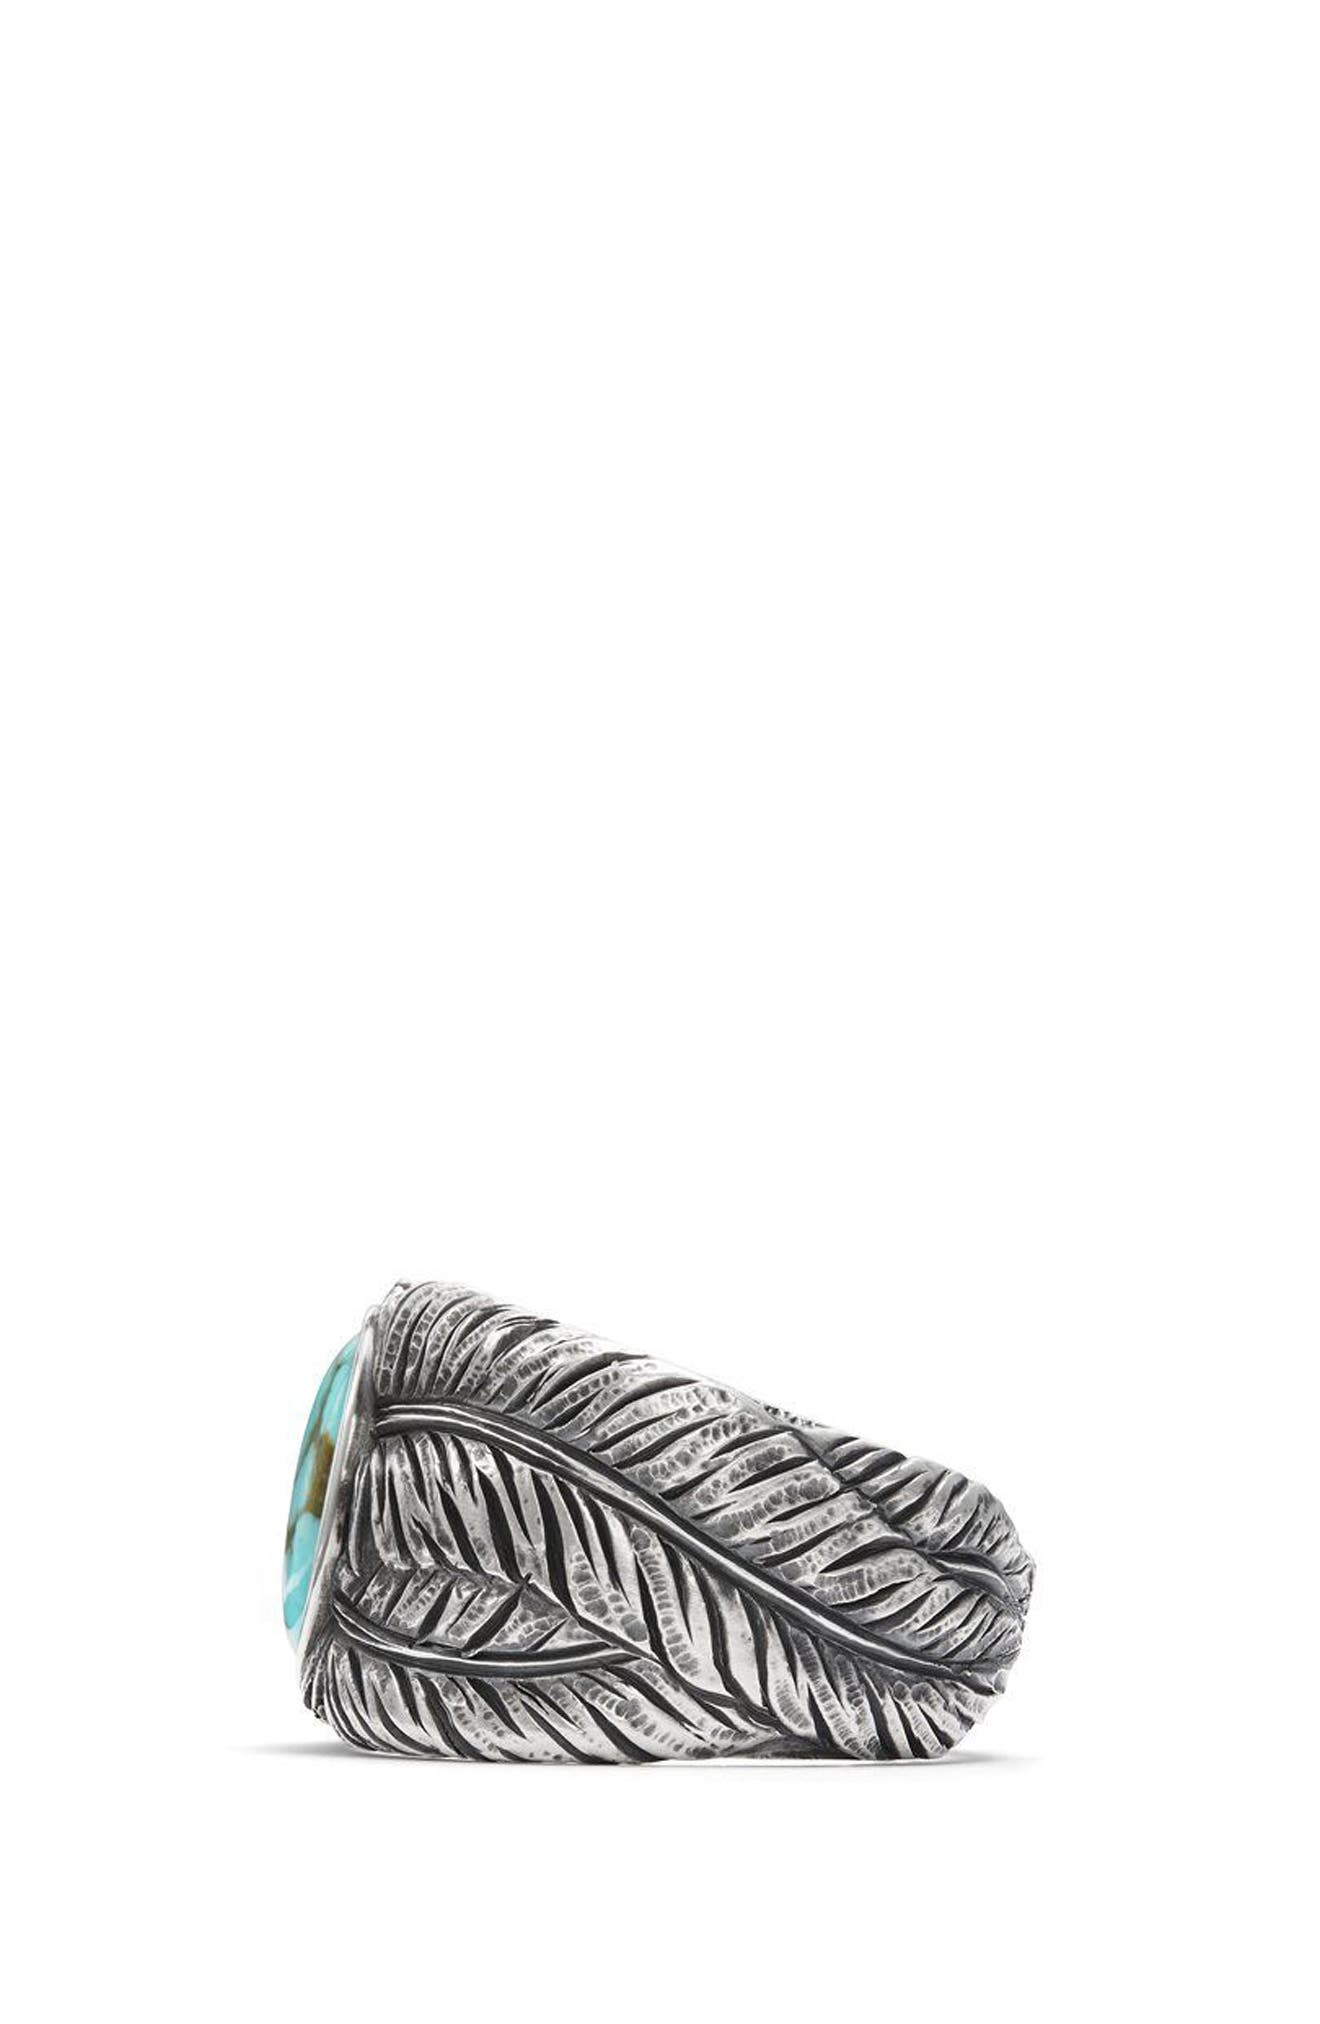 Southwest Cigar Band Feather Ring with Turquoise,                             Alternate thumbnail 2, color,                             Turquoise